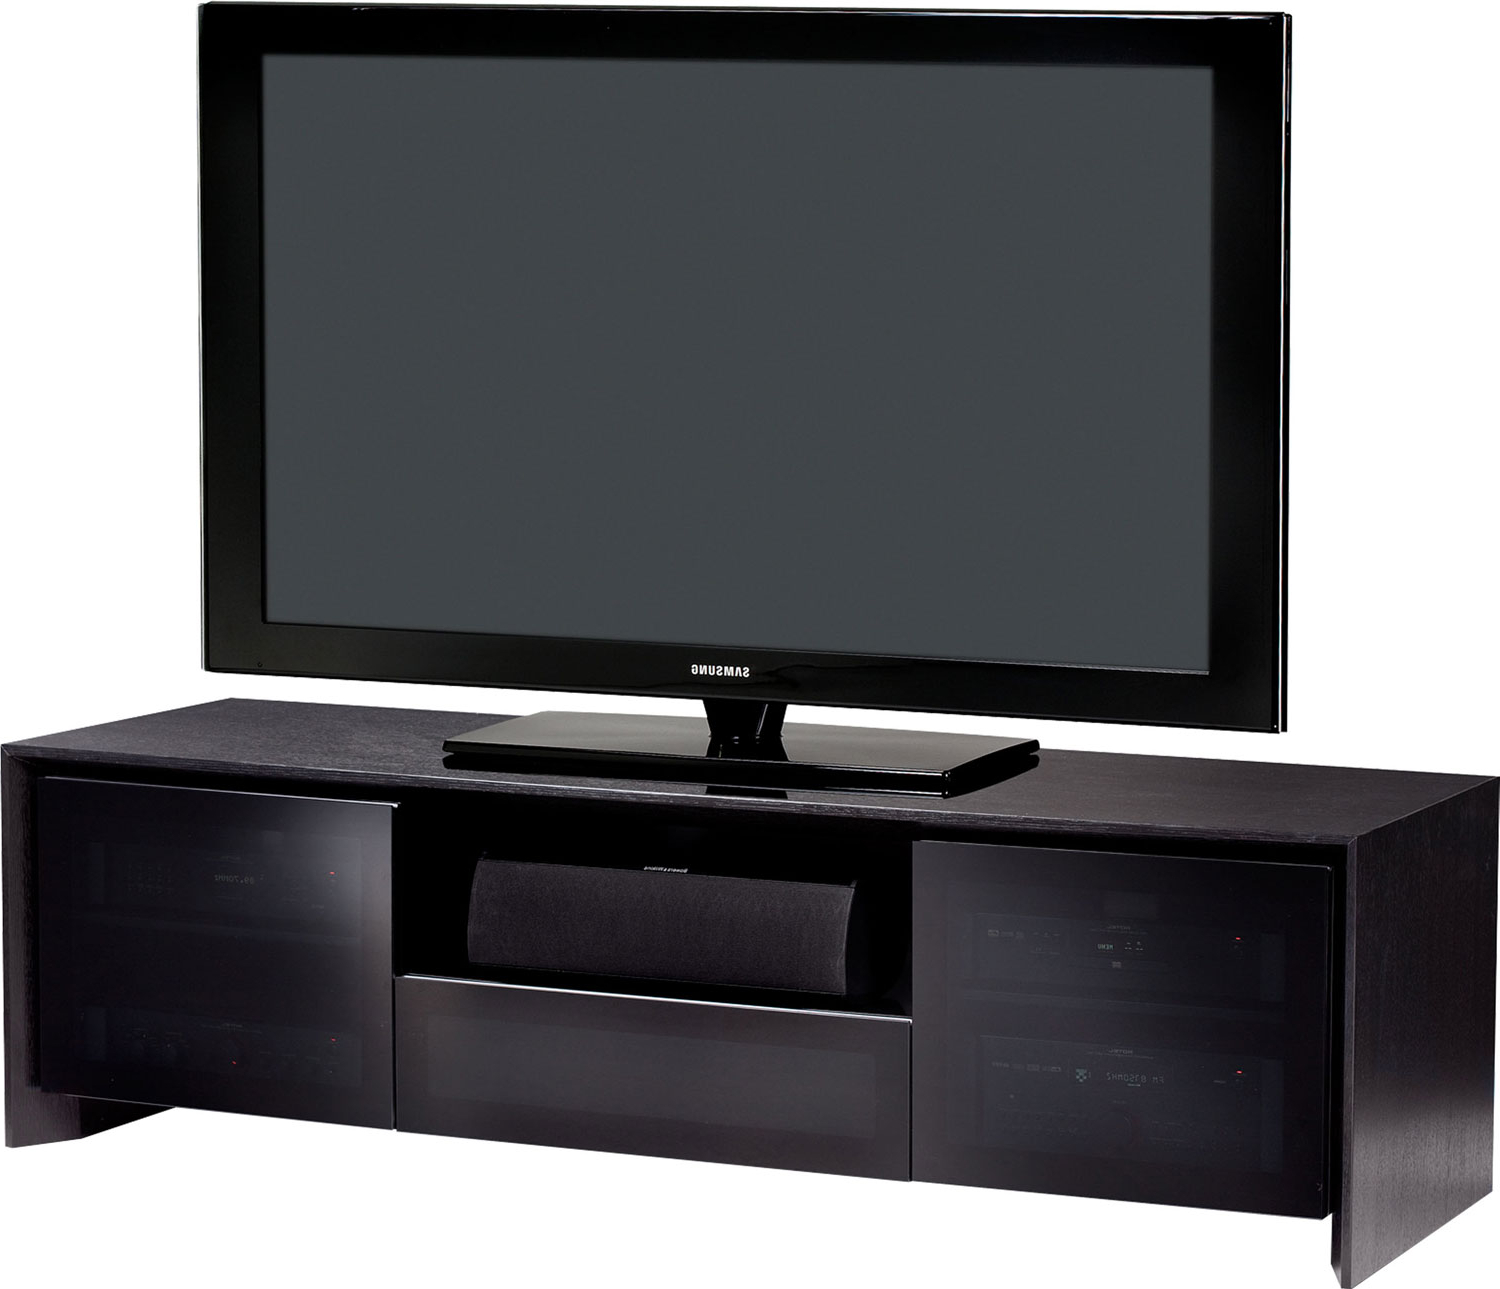 """Bdi Casata 8629 B Black Oak Tv Stand For Up To 70 Inch Intended For Broward Tv Stands For Tvs Up To 70"""" (View 8 of 20)"""